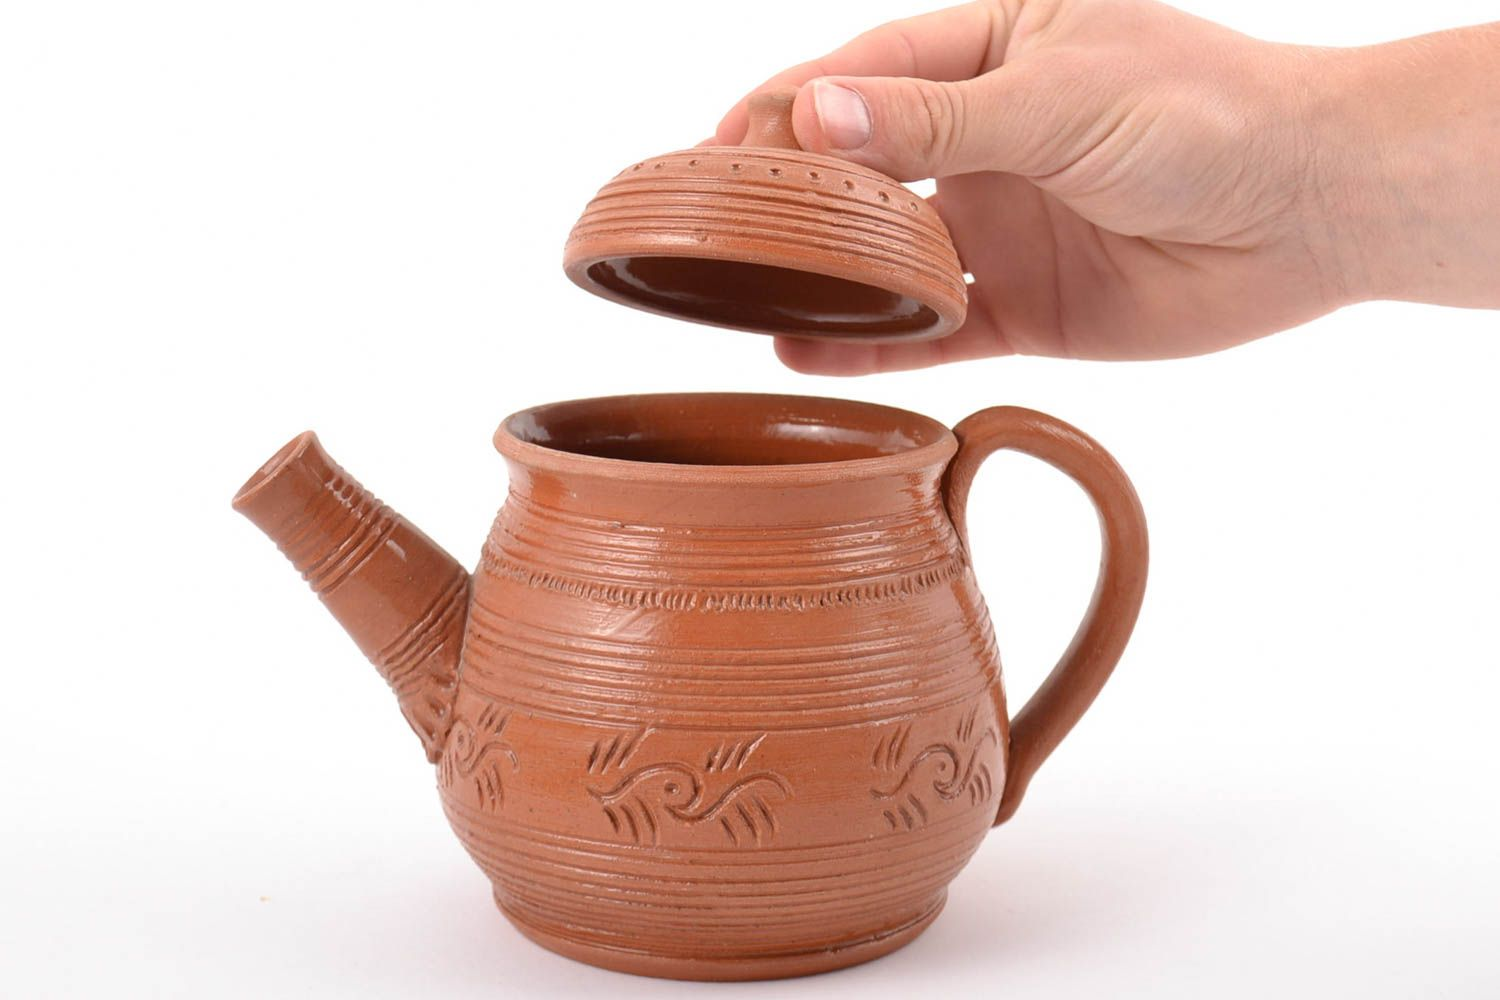 tea pots and coffee pots Homemade designer ceramic teapot with pattern 600 ml - MADEheart.com